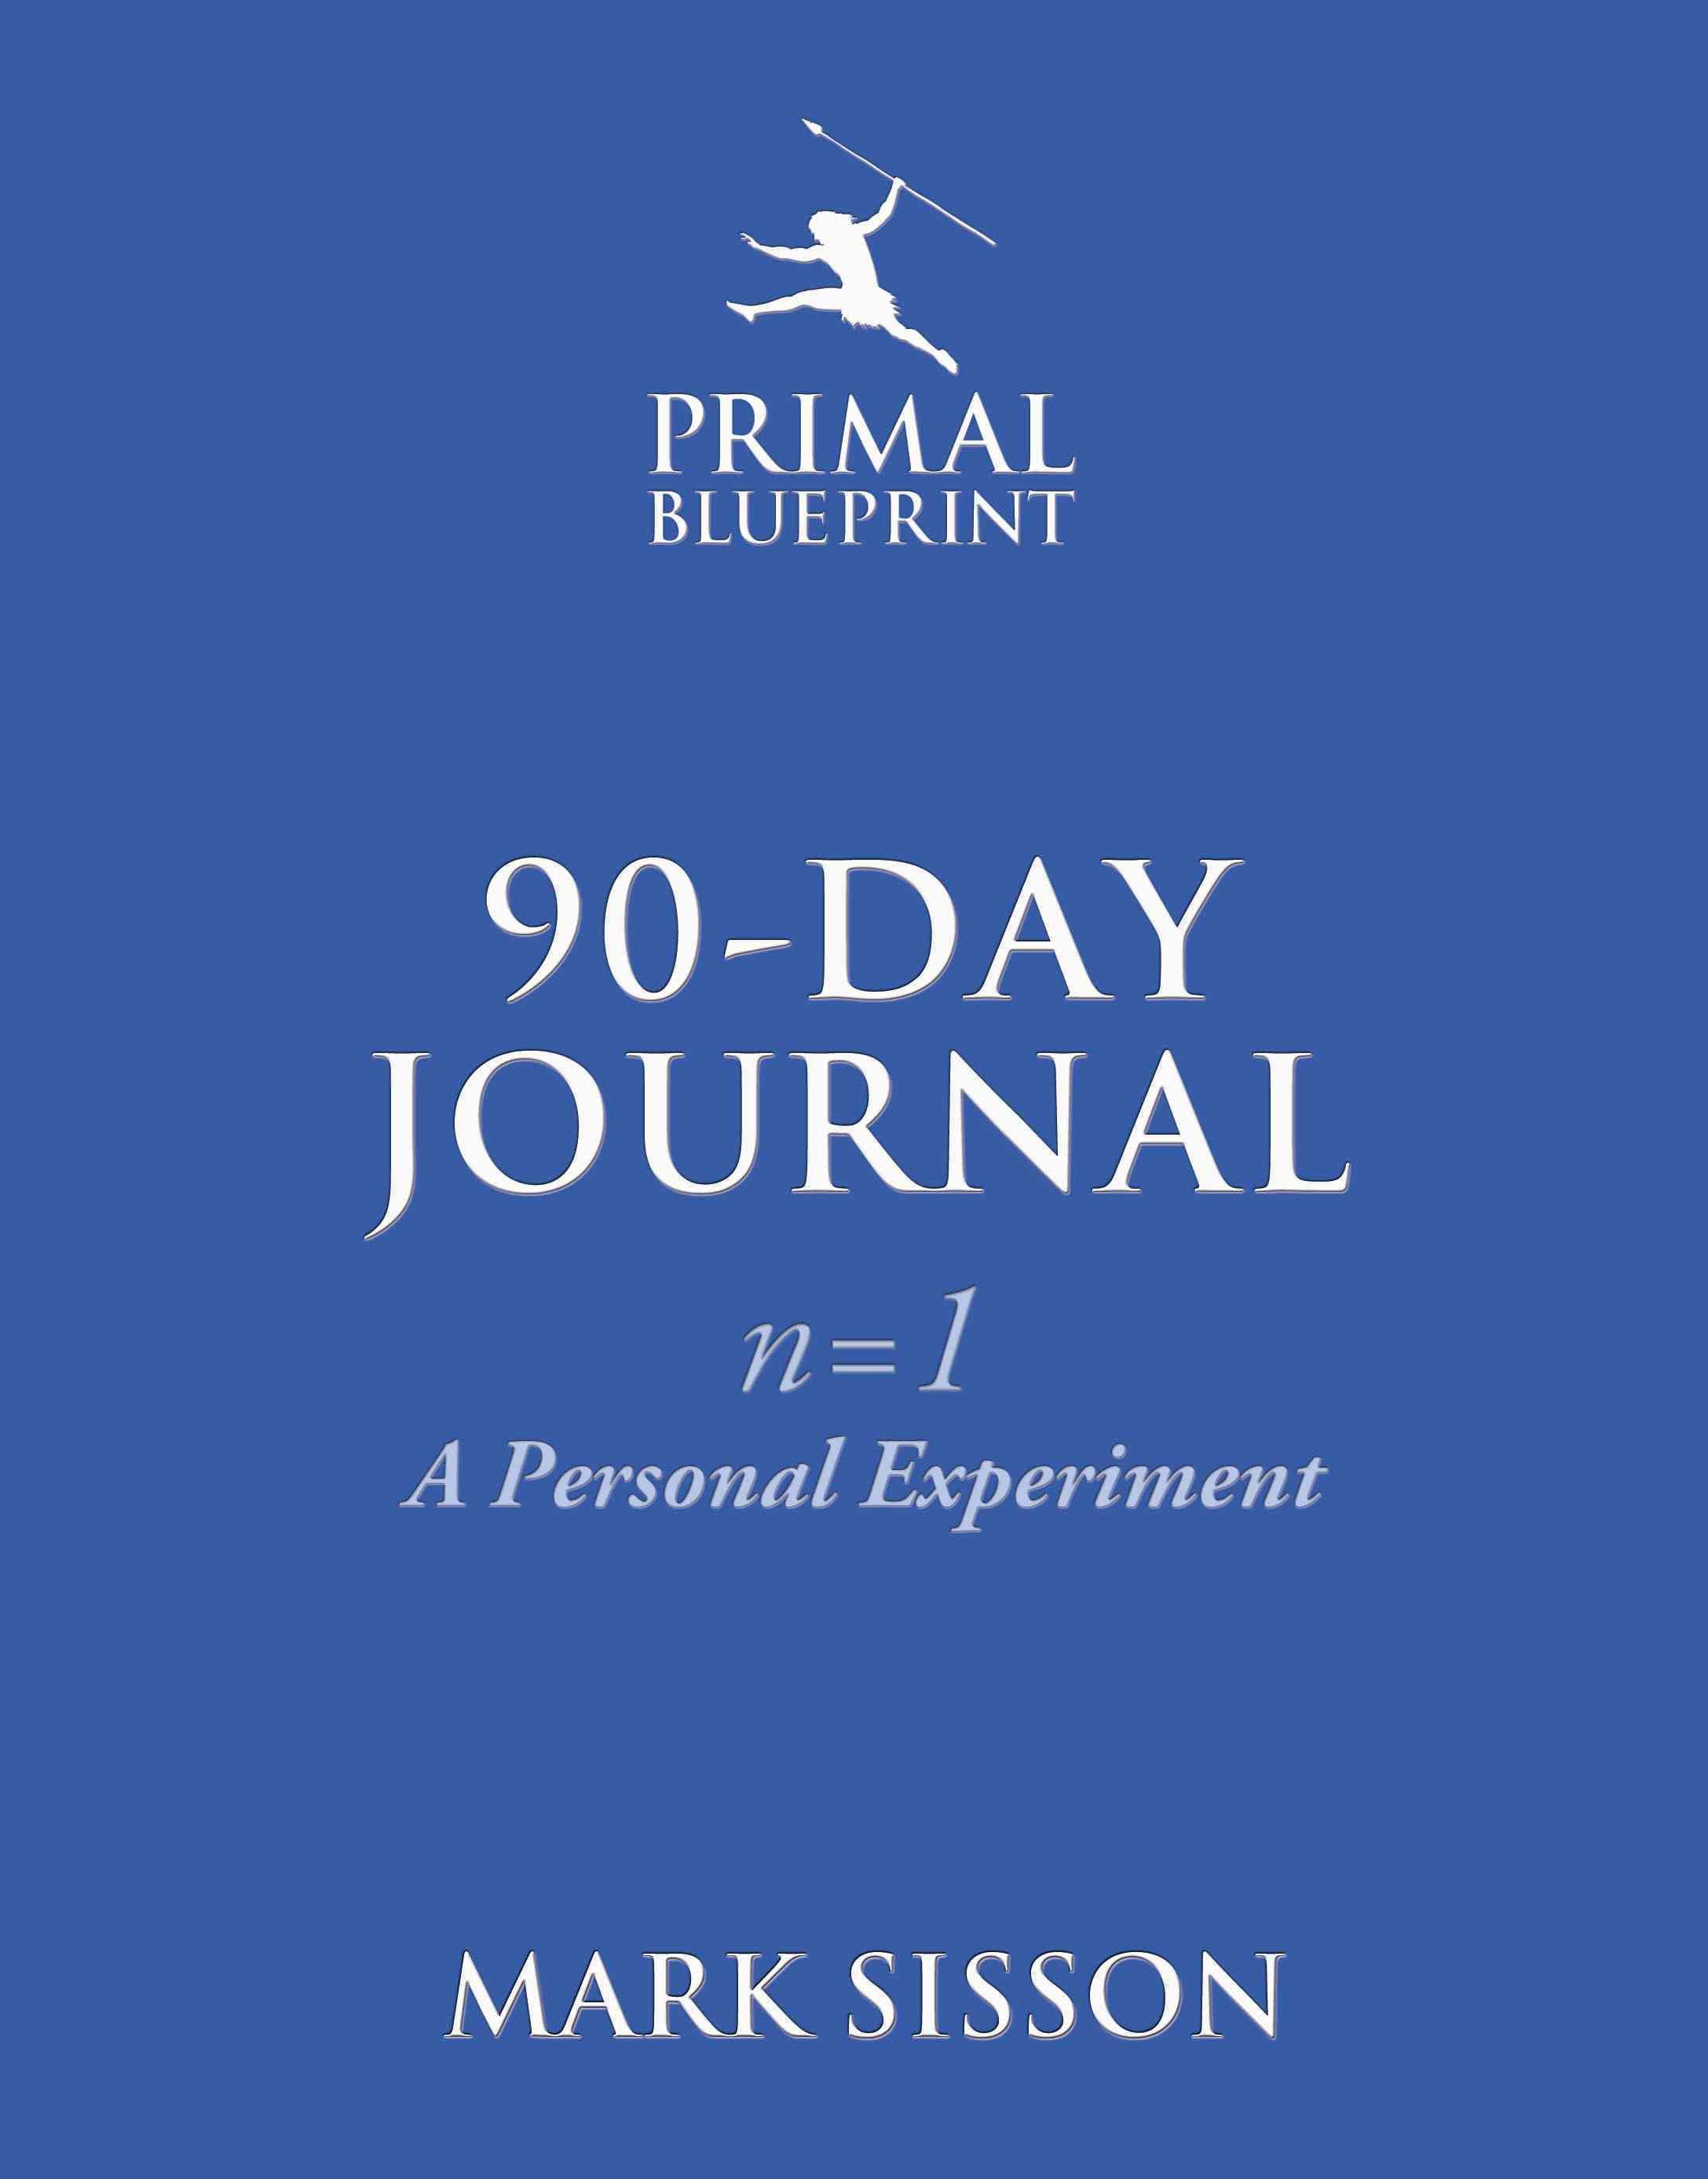 The primal blueprint 90 day journal n1 a personal experiment the primal blueprint 90 day journal n1 a personal experiment paperback malvernweather Choice Image